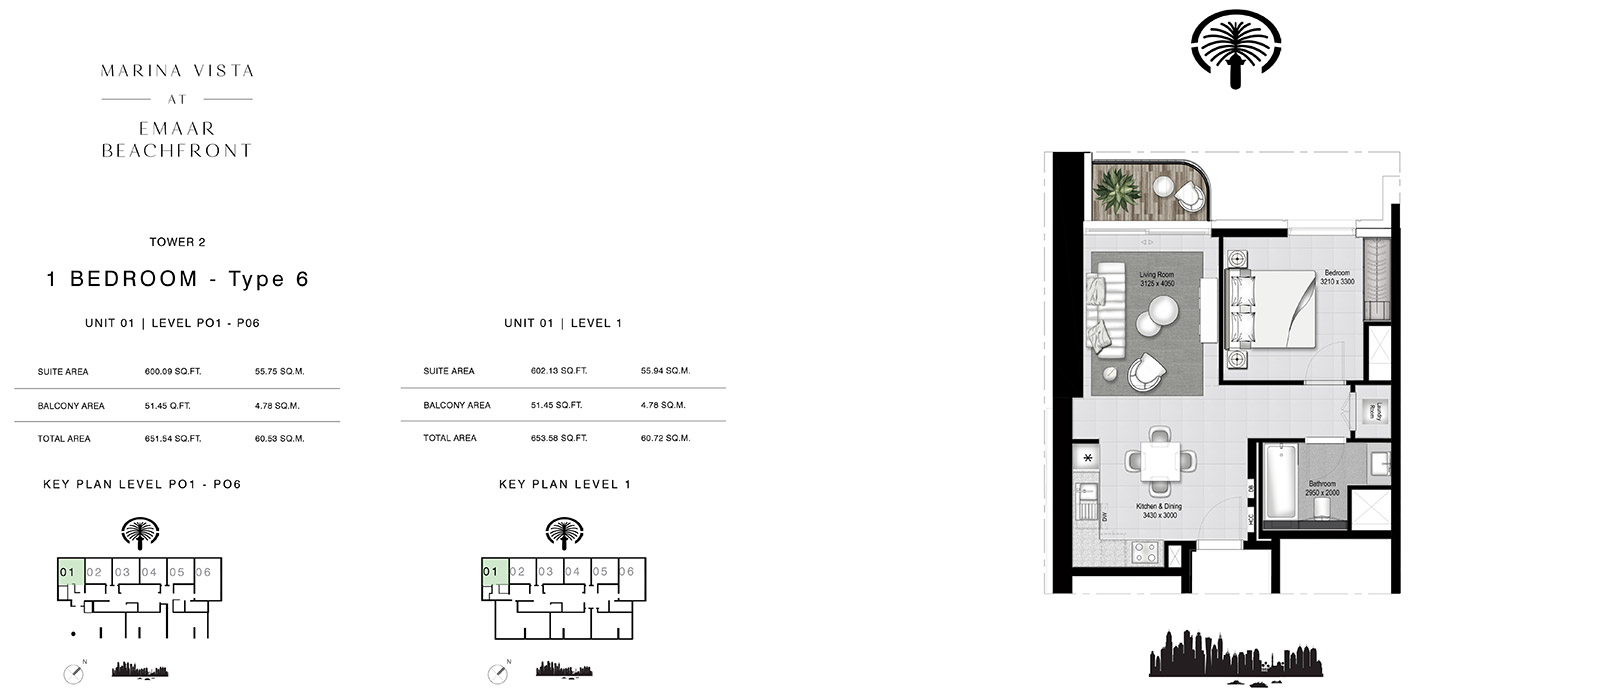 1 Bedroom Tower 2, Type 6, Size 653.58 sq.ft.